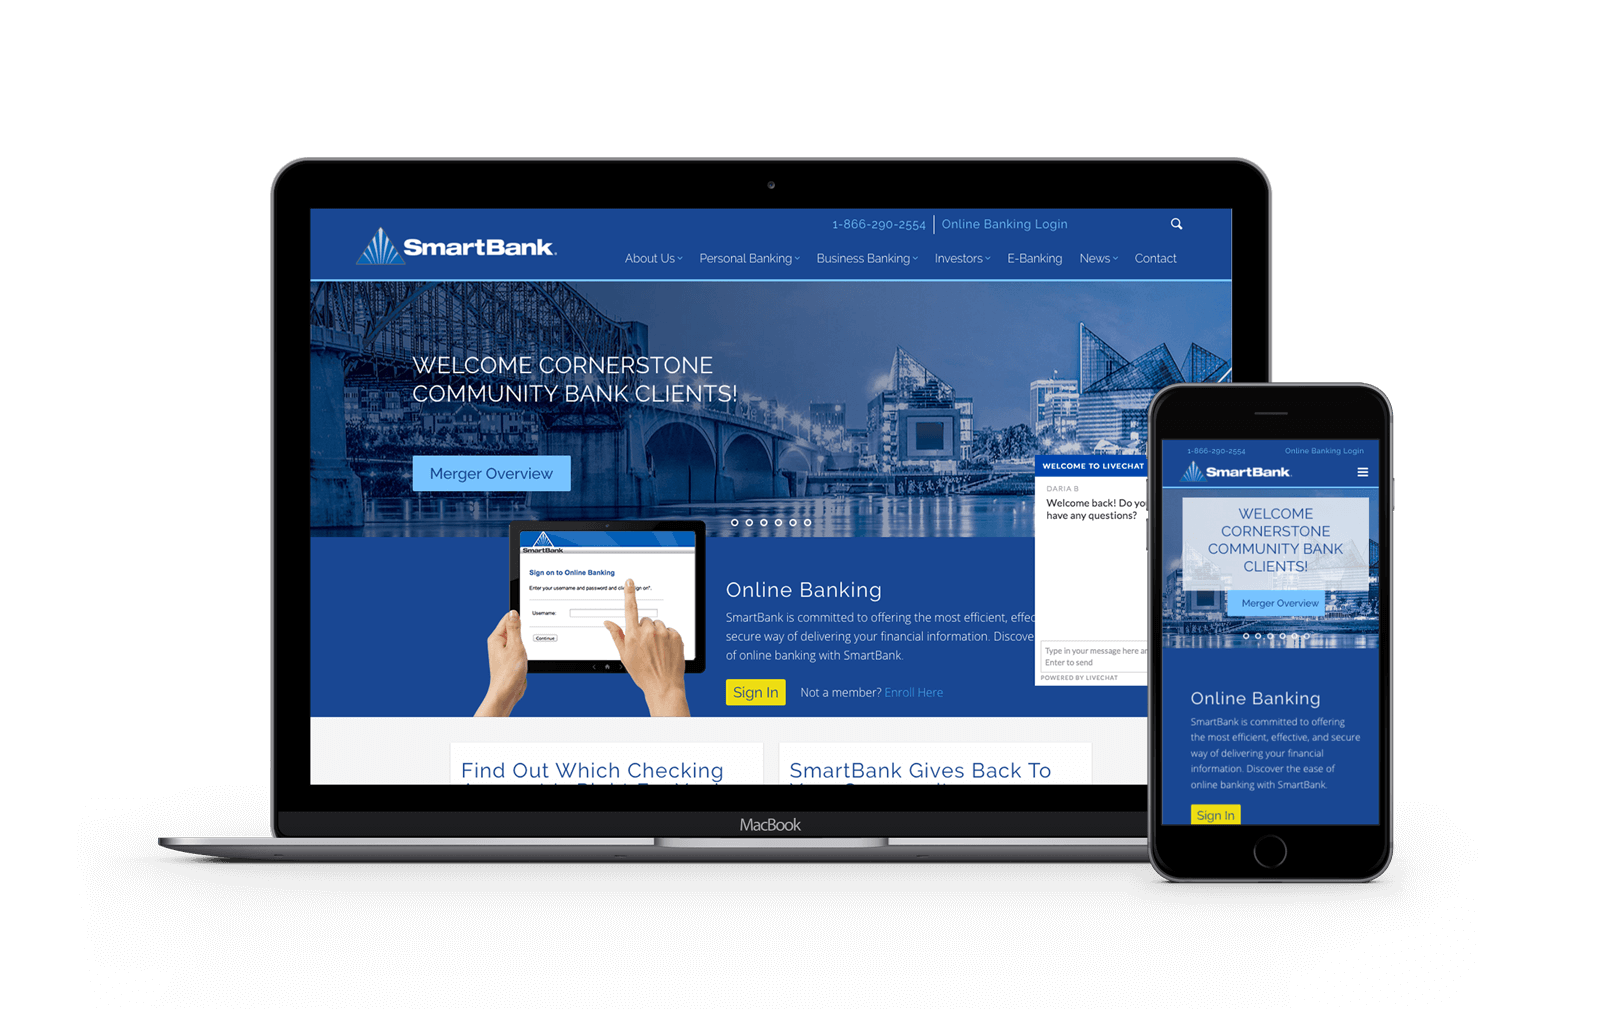 smartbank-casestudy-mockup_1600px.png